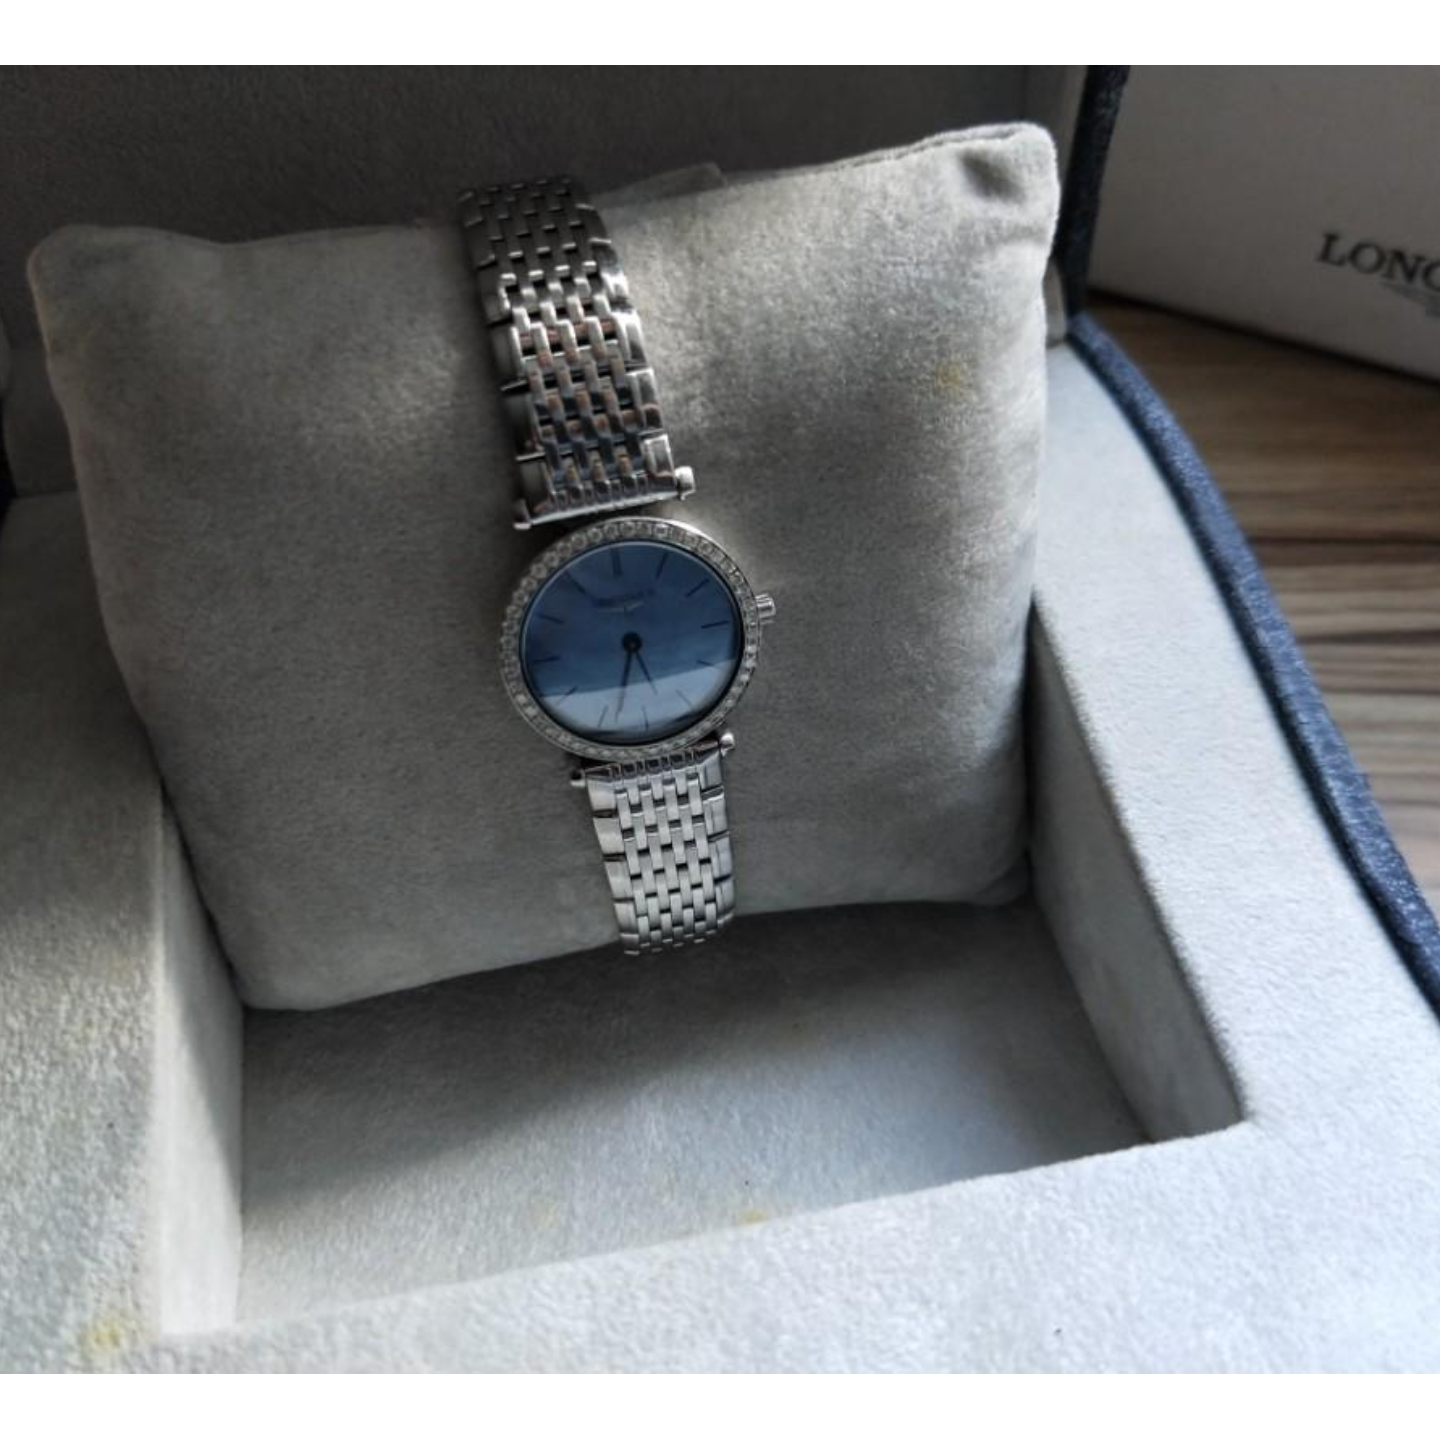 LONGINES Le Grant Classique Mother of Pearl Diamond Watch